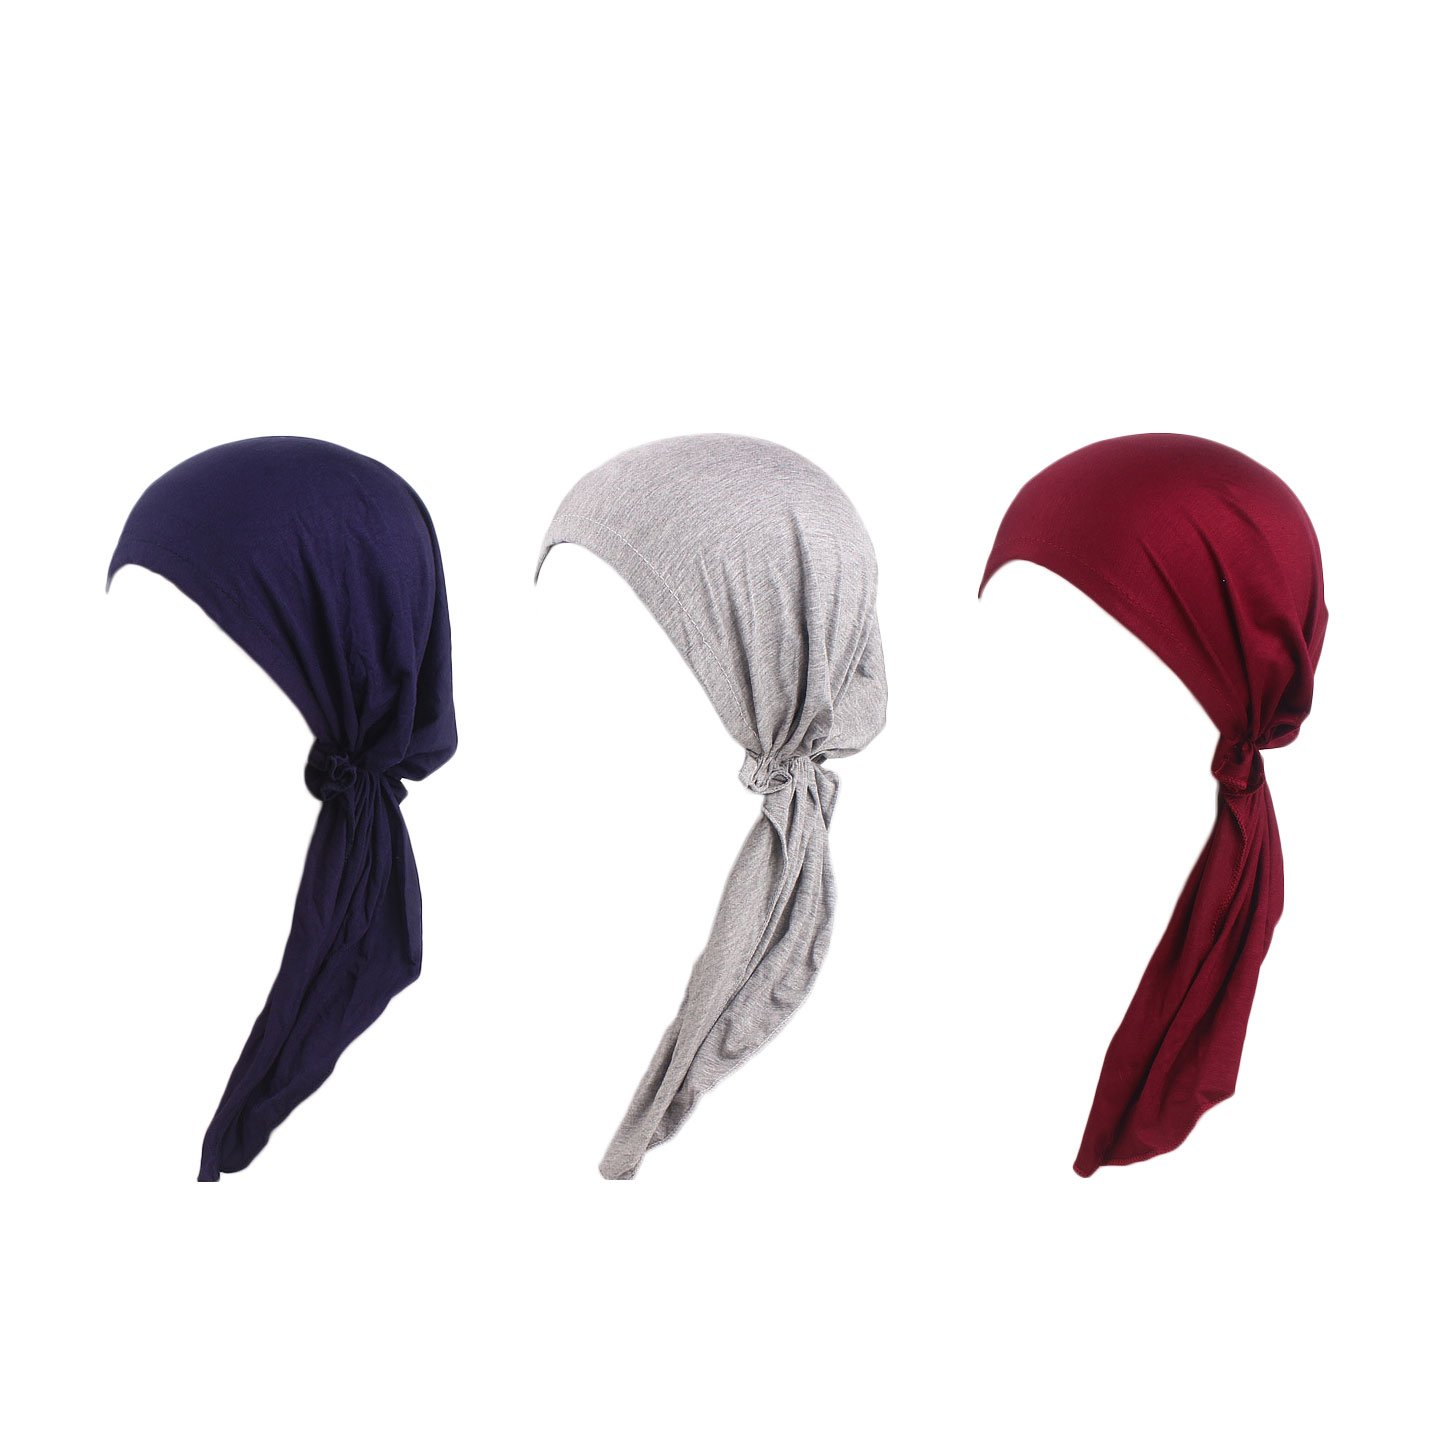 3 Pack Women's Chemo Hat Turban Head Scarves for Cancer Patient (Navy, Grey, Wine Red)